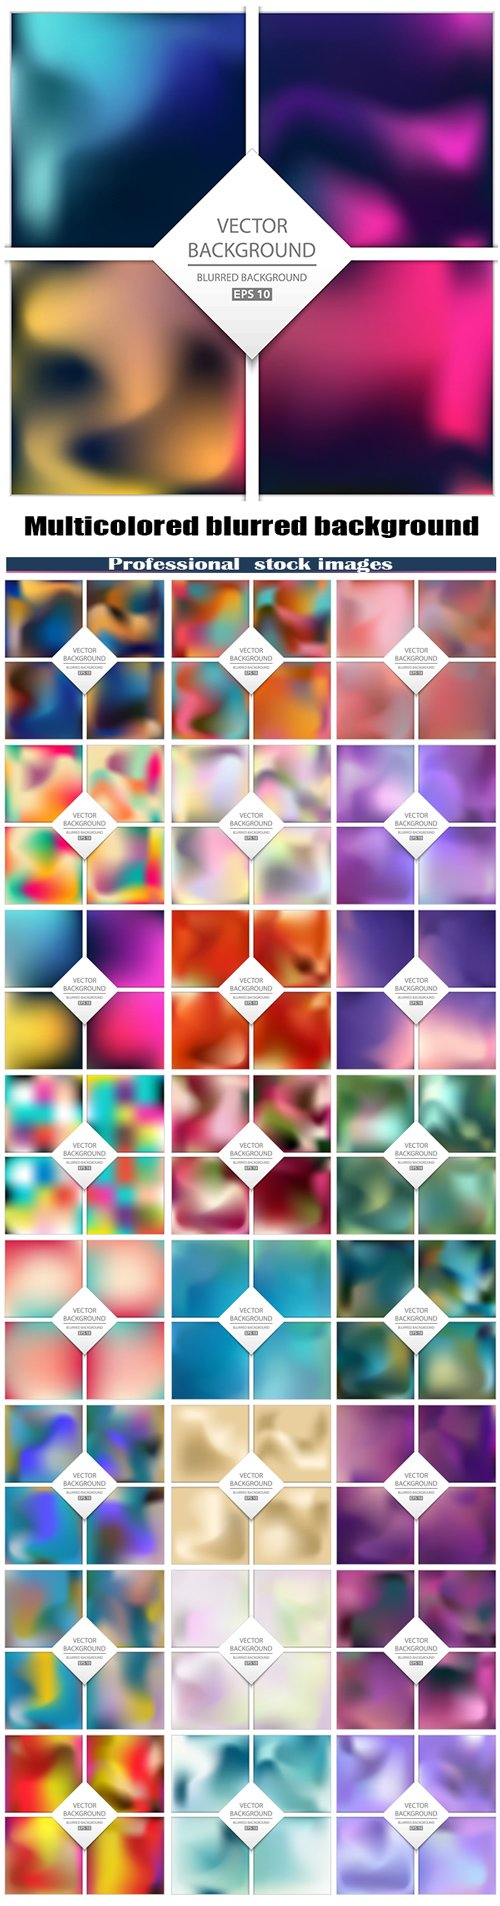 Multicolored blurred background set